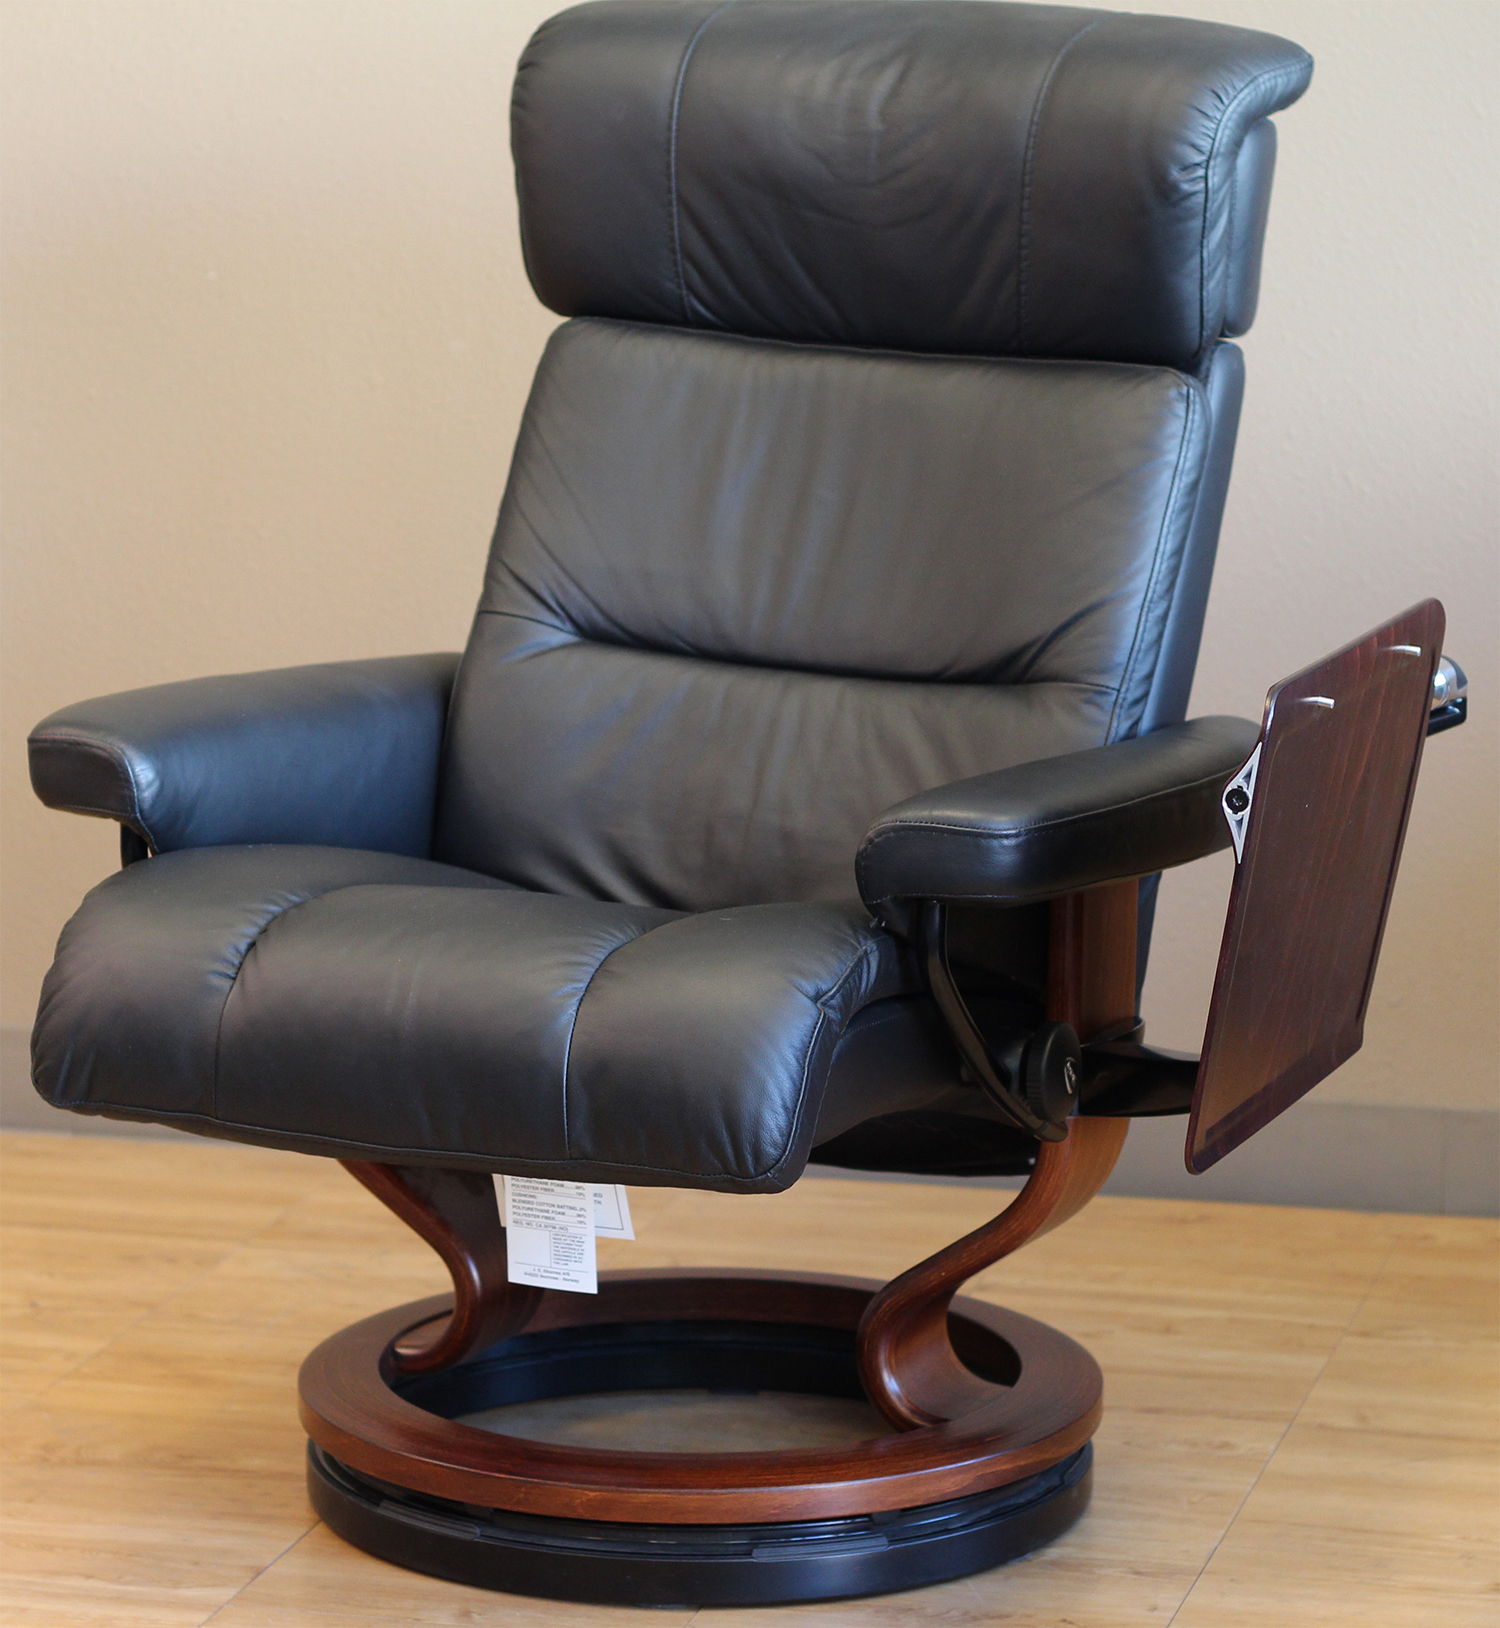 stressless elevator ring for ekornes recliner chairs - Stressless Chair